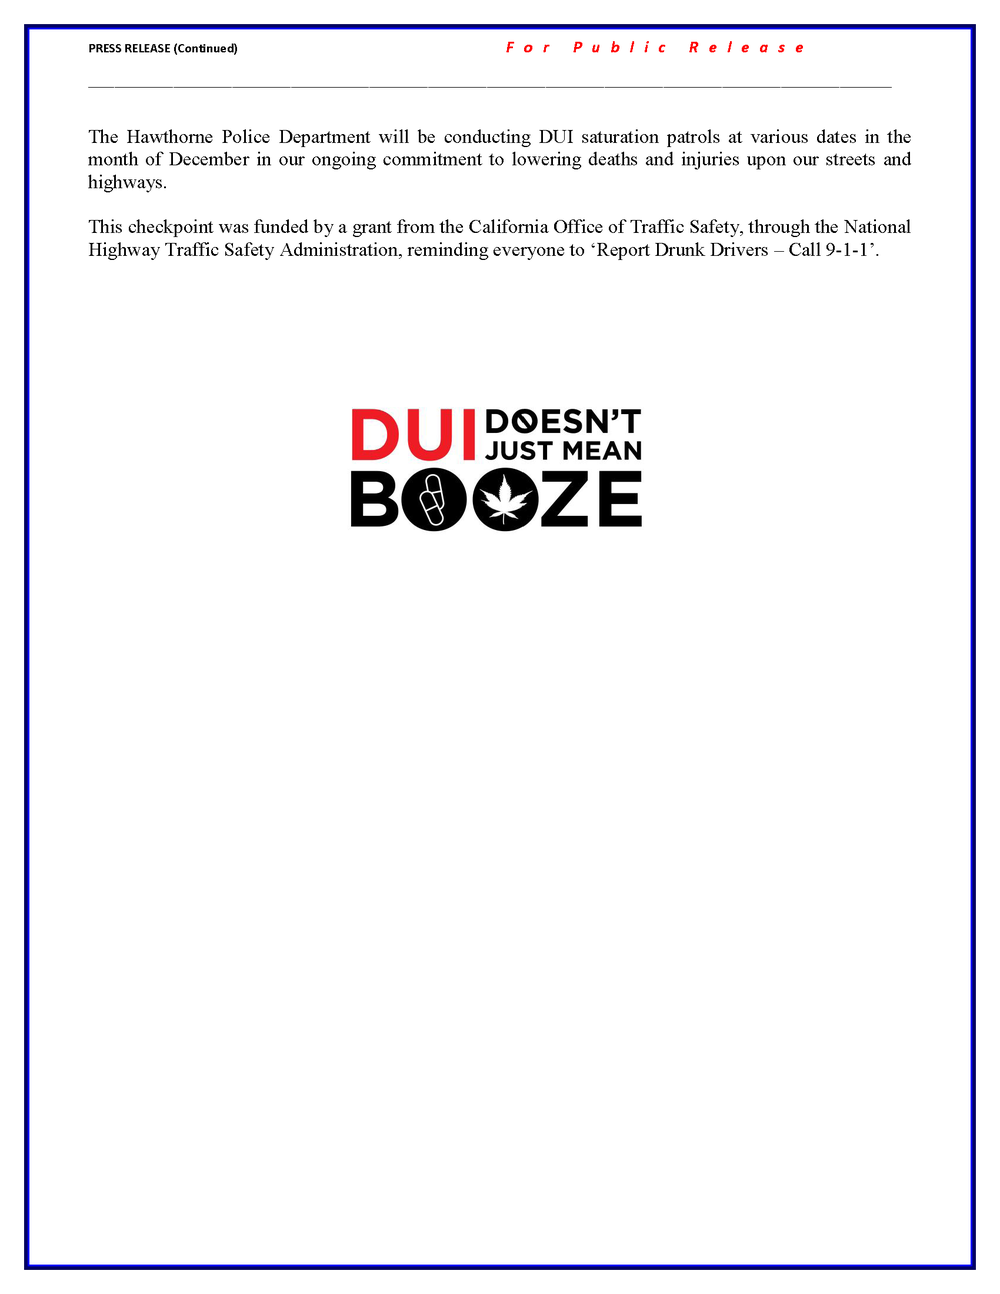 DUI - CDL CHKPOINT RESULTS PRESS RELEASE 12-15-17_Page_2.png